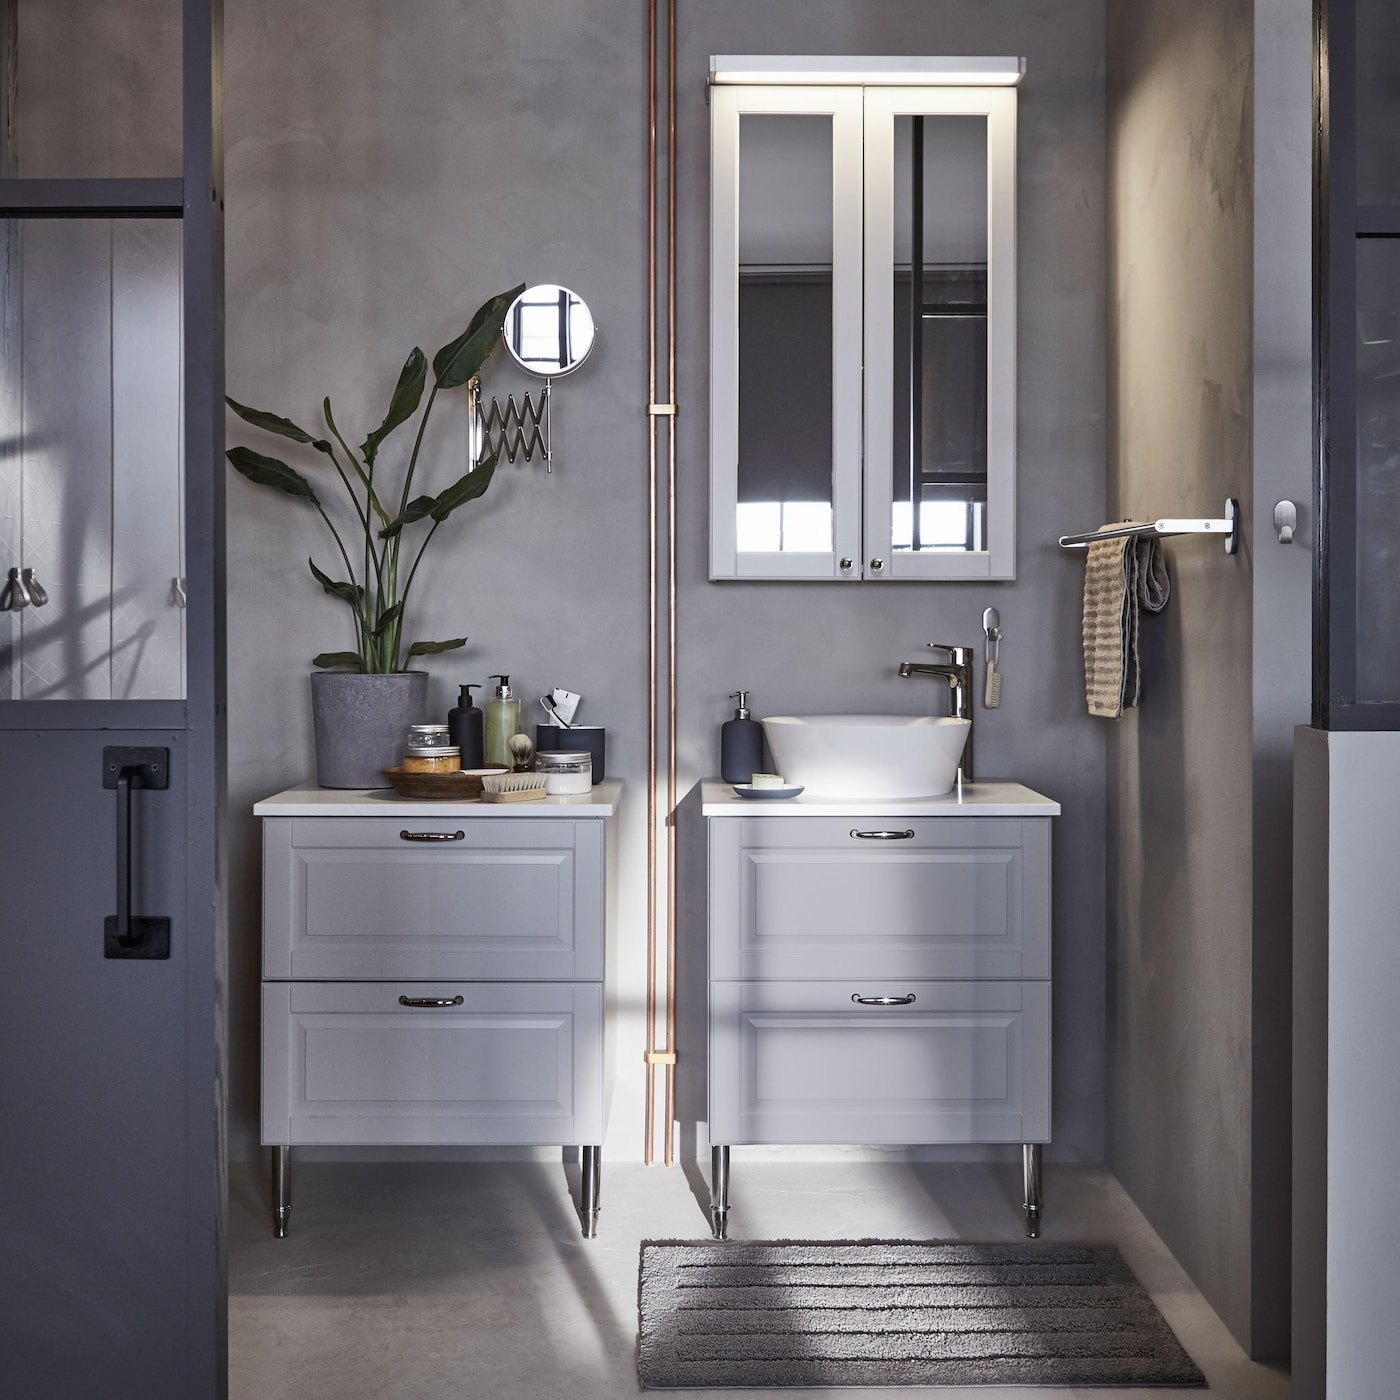 IKEA GODMORGON light grey bathroom wash cabinets and drawers are made from solid wood, while the smooth melamine countertop hides fingerprints and splash marks.